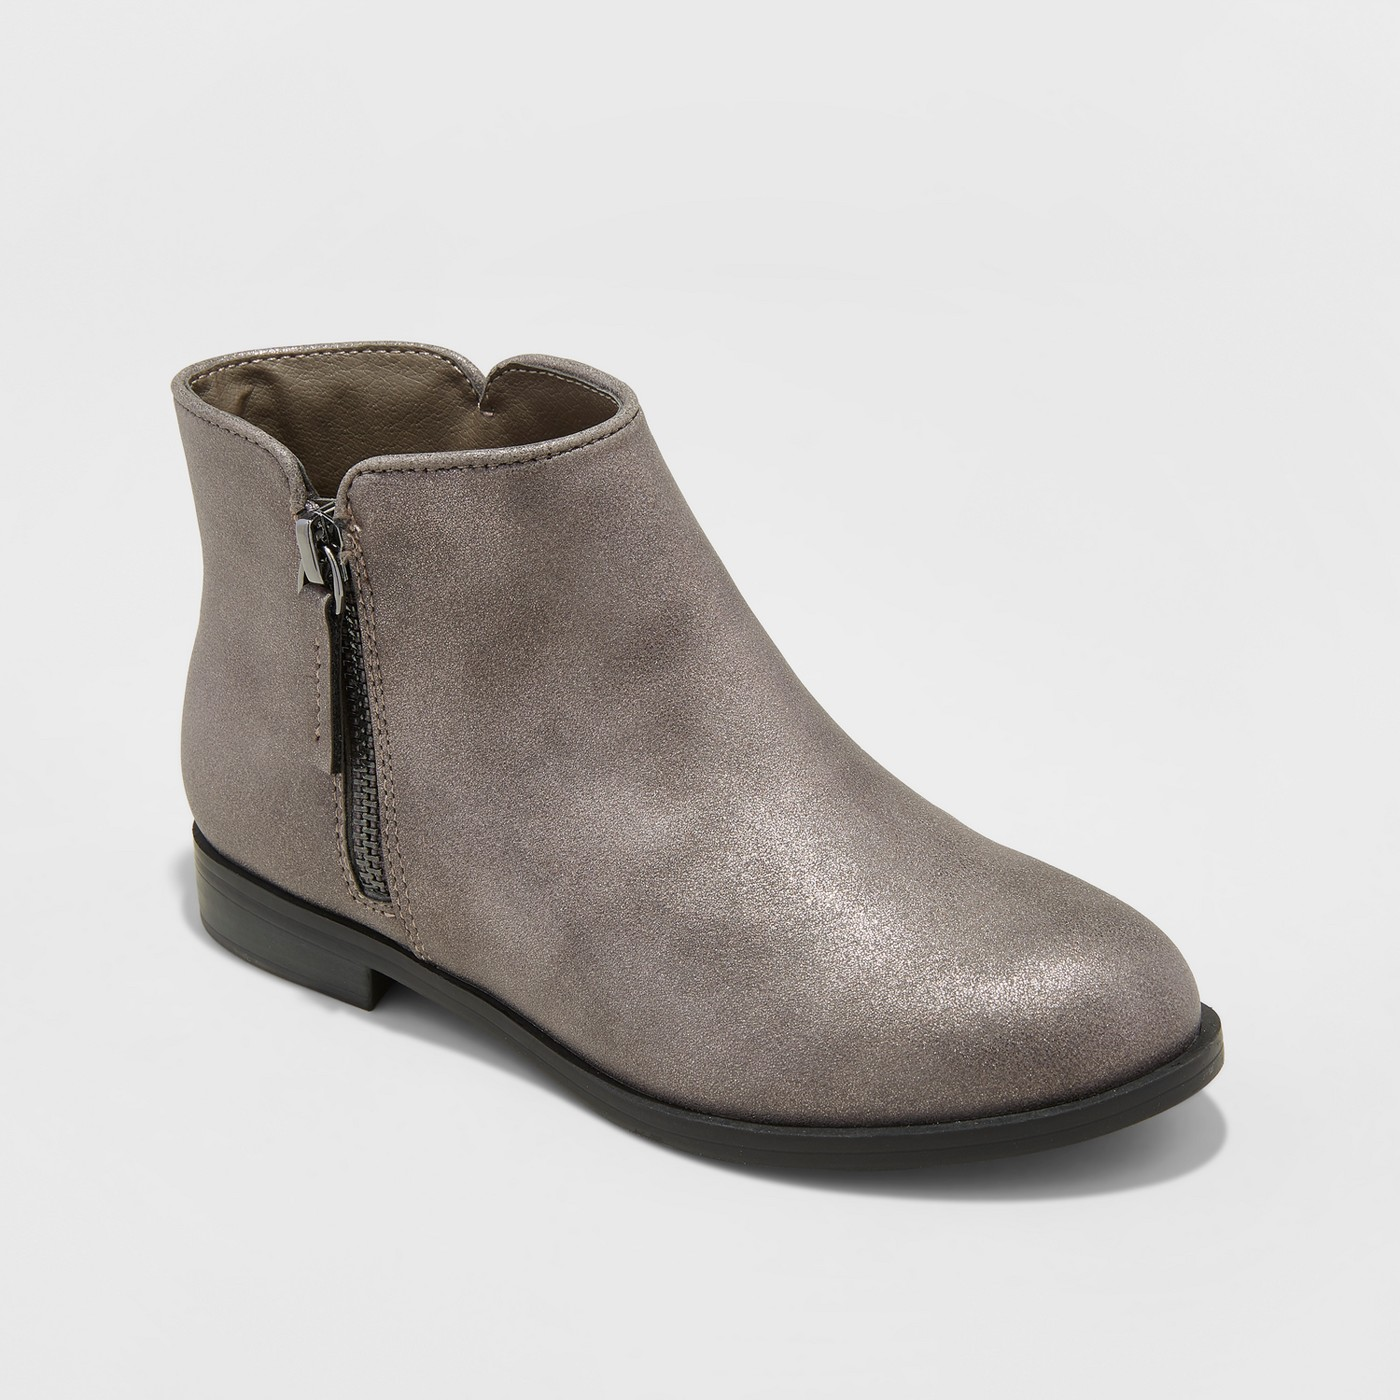 Girls' Jani Metallic Ankle Boots - Cat & Jack™ - image 1 of 3